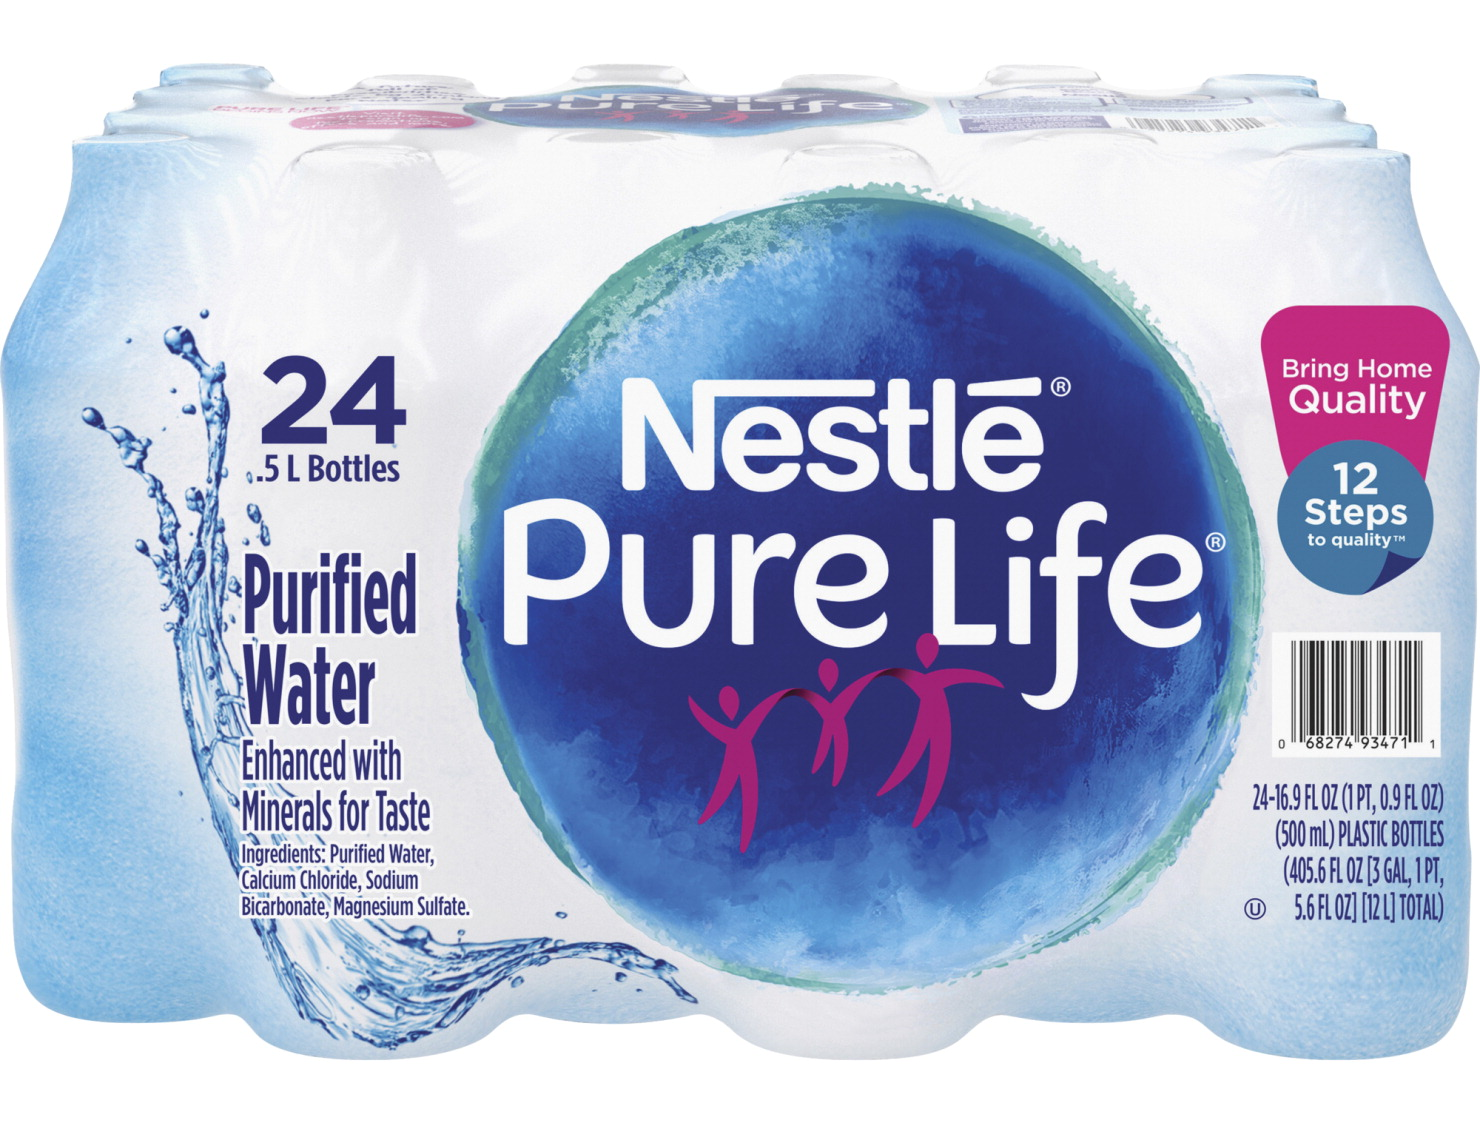 Nestle Pure Life Purified Bottled Water, 16 9 Ounce Bottles, Carton of 24